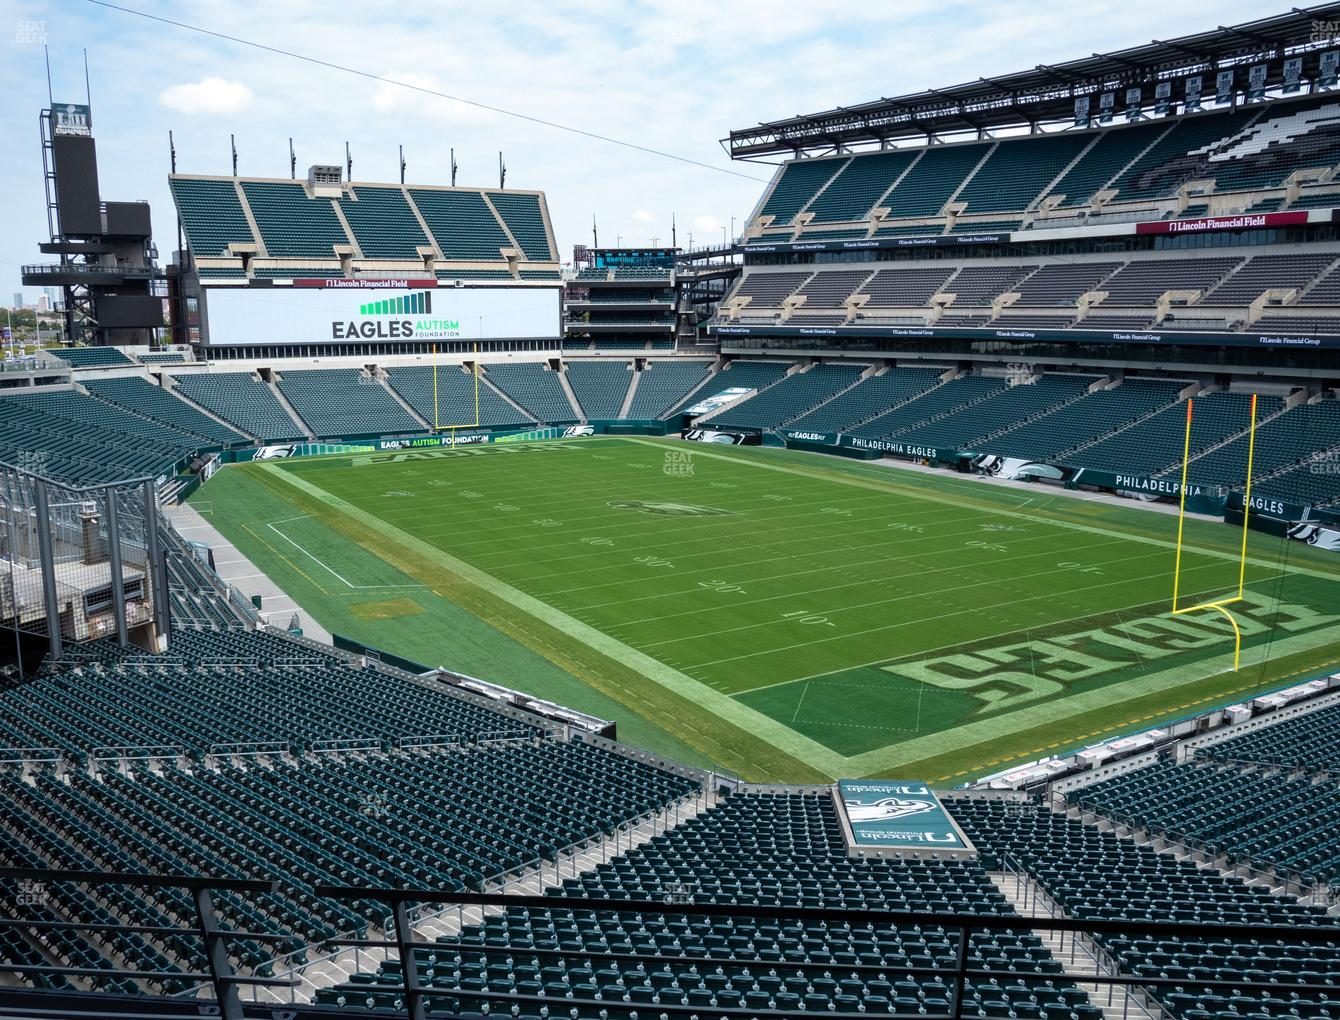 Philadelphia Eagles at Lincoln Financial Field Southwest Terrace View